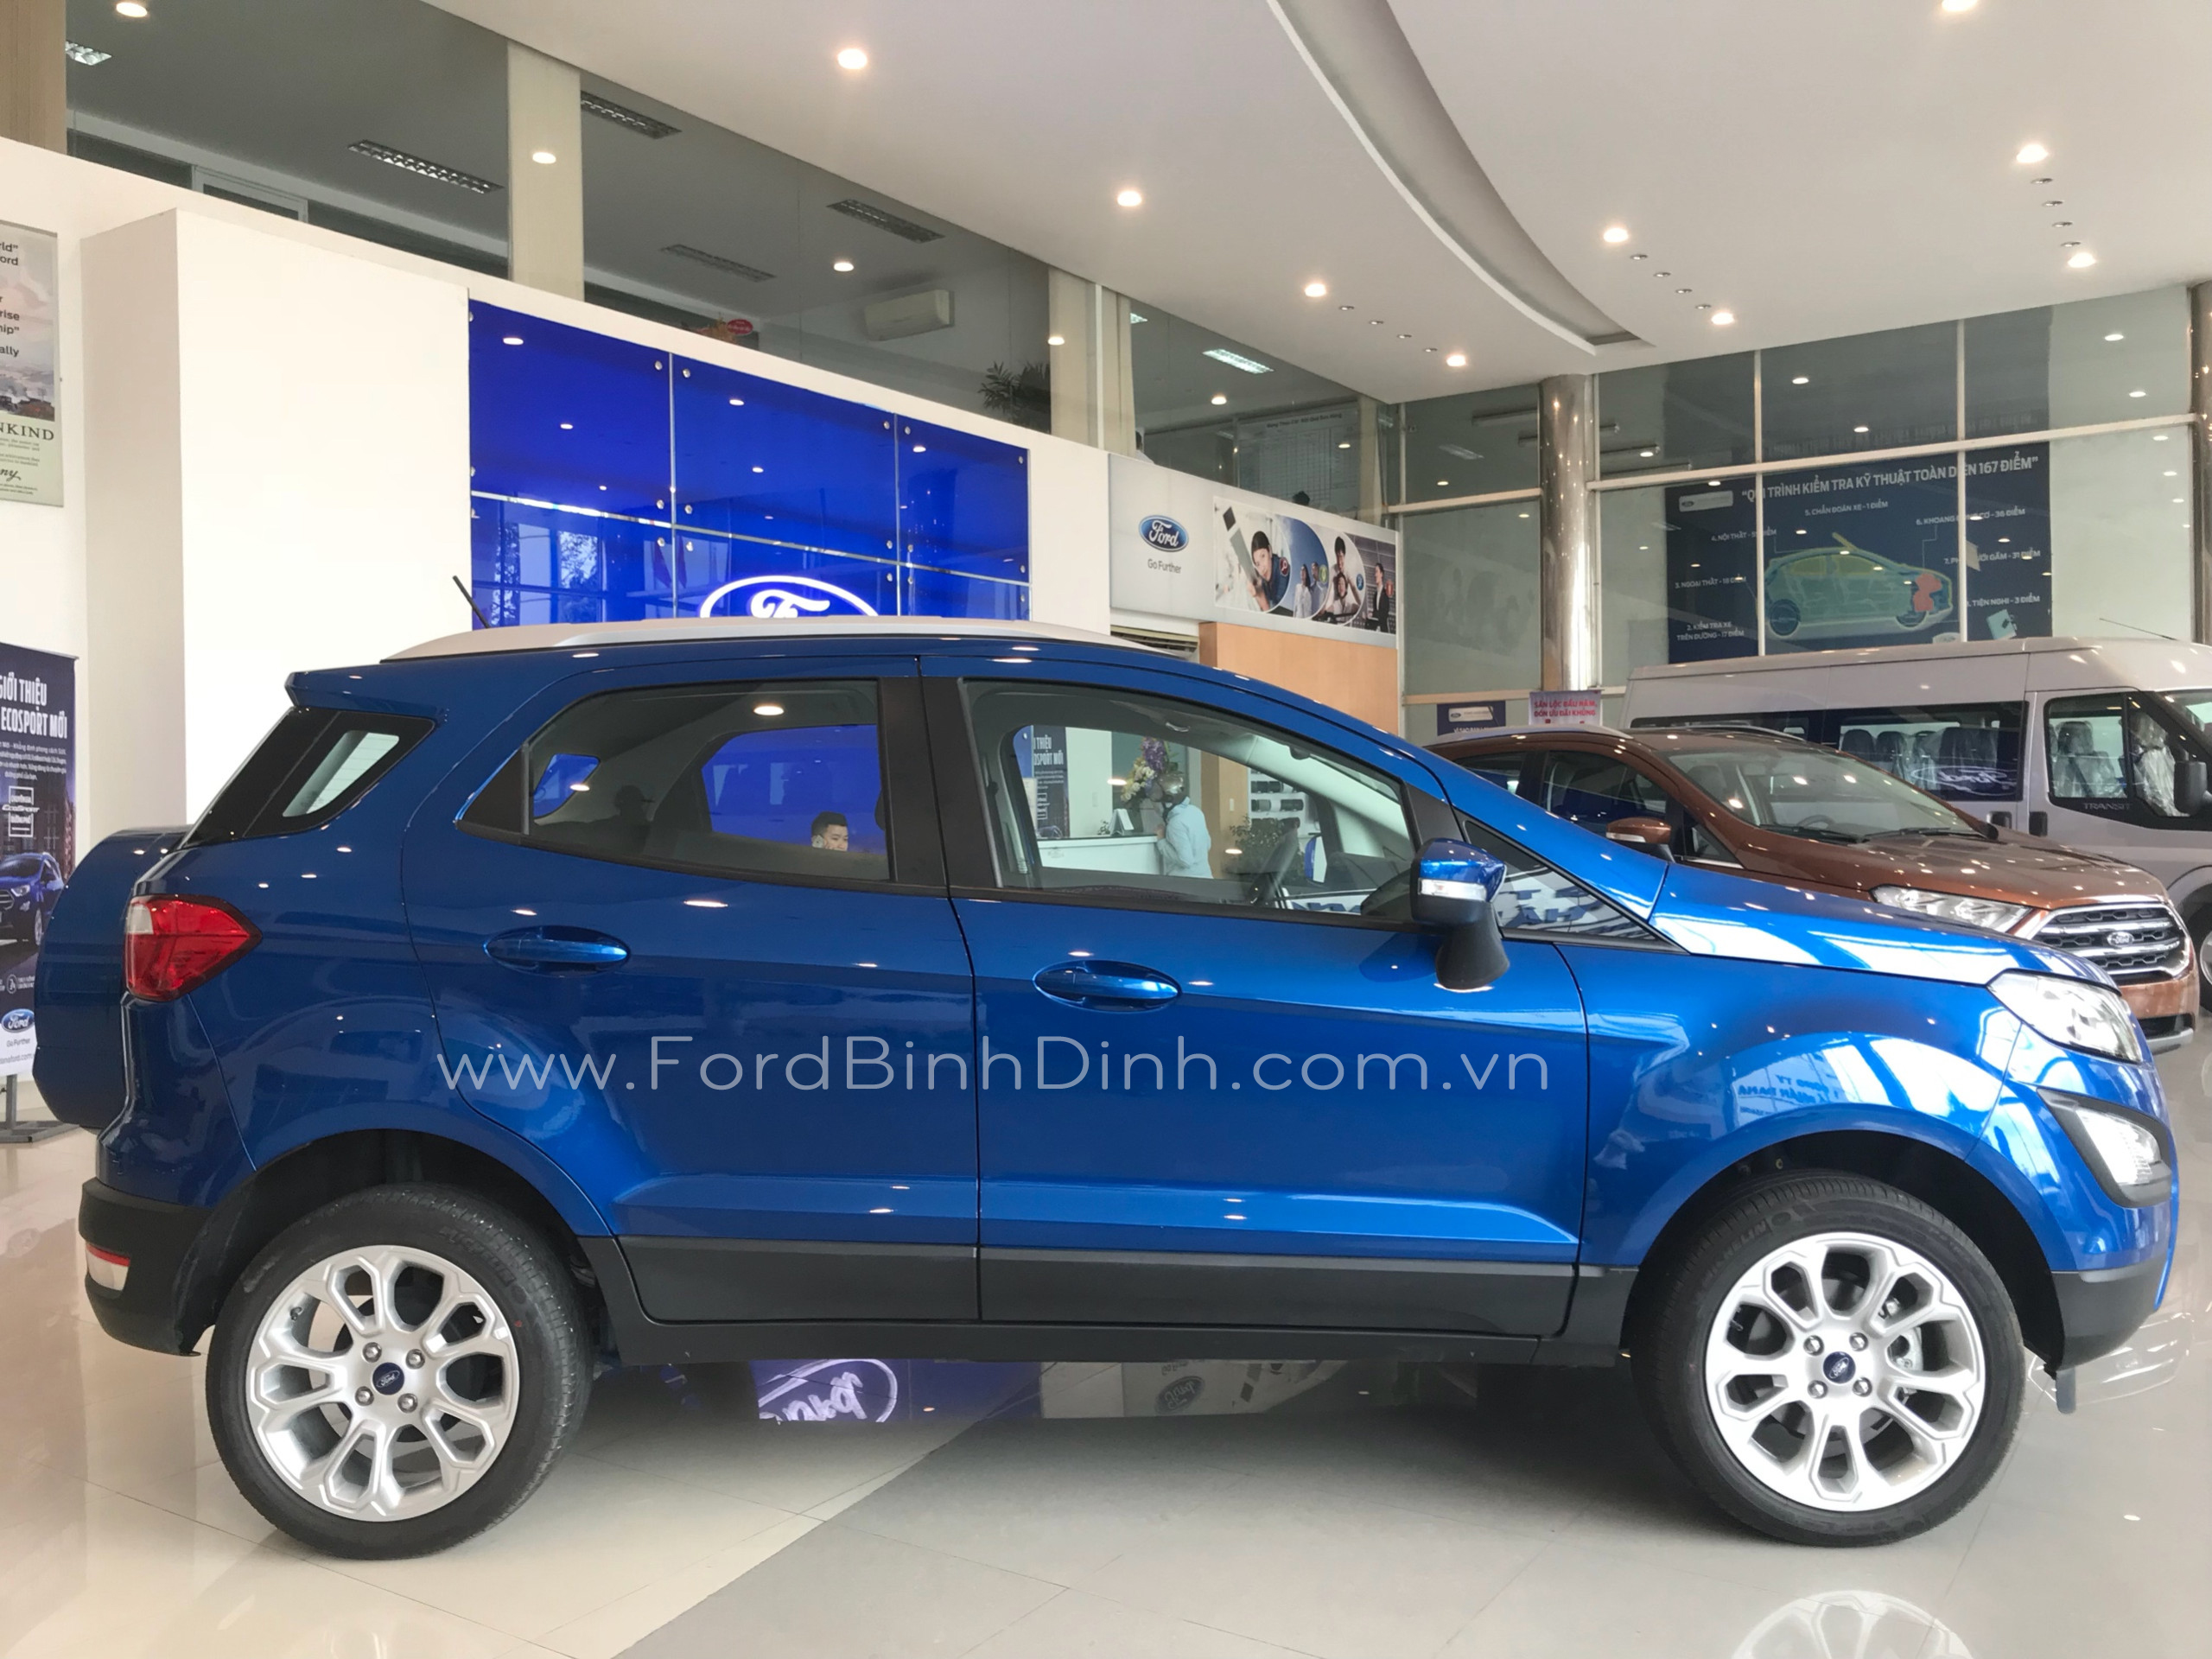 ecosport-2018-trend-at3-ford-binh-dinh-com-vn